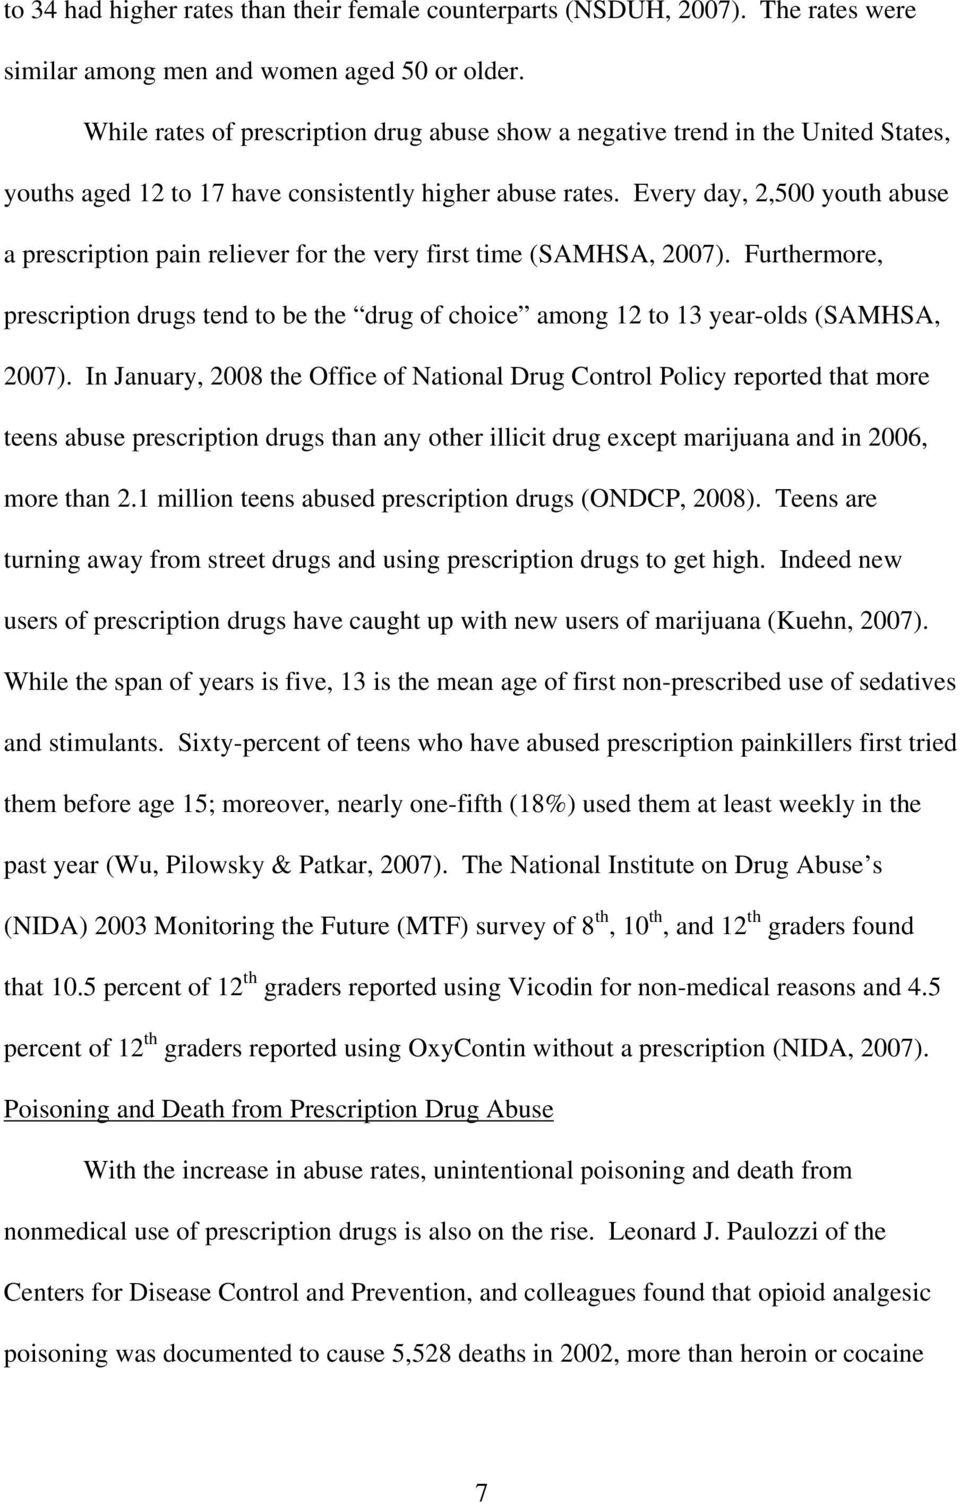 Every day, 2,500 youth abuse a prescription pain reliever for the very first time (SAMHSA, 2007). Furthermore, prescription drugs tend to be the drug of choice among 12 to 13 year-olds (SAMHSA, 2007).